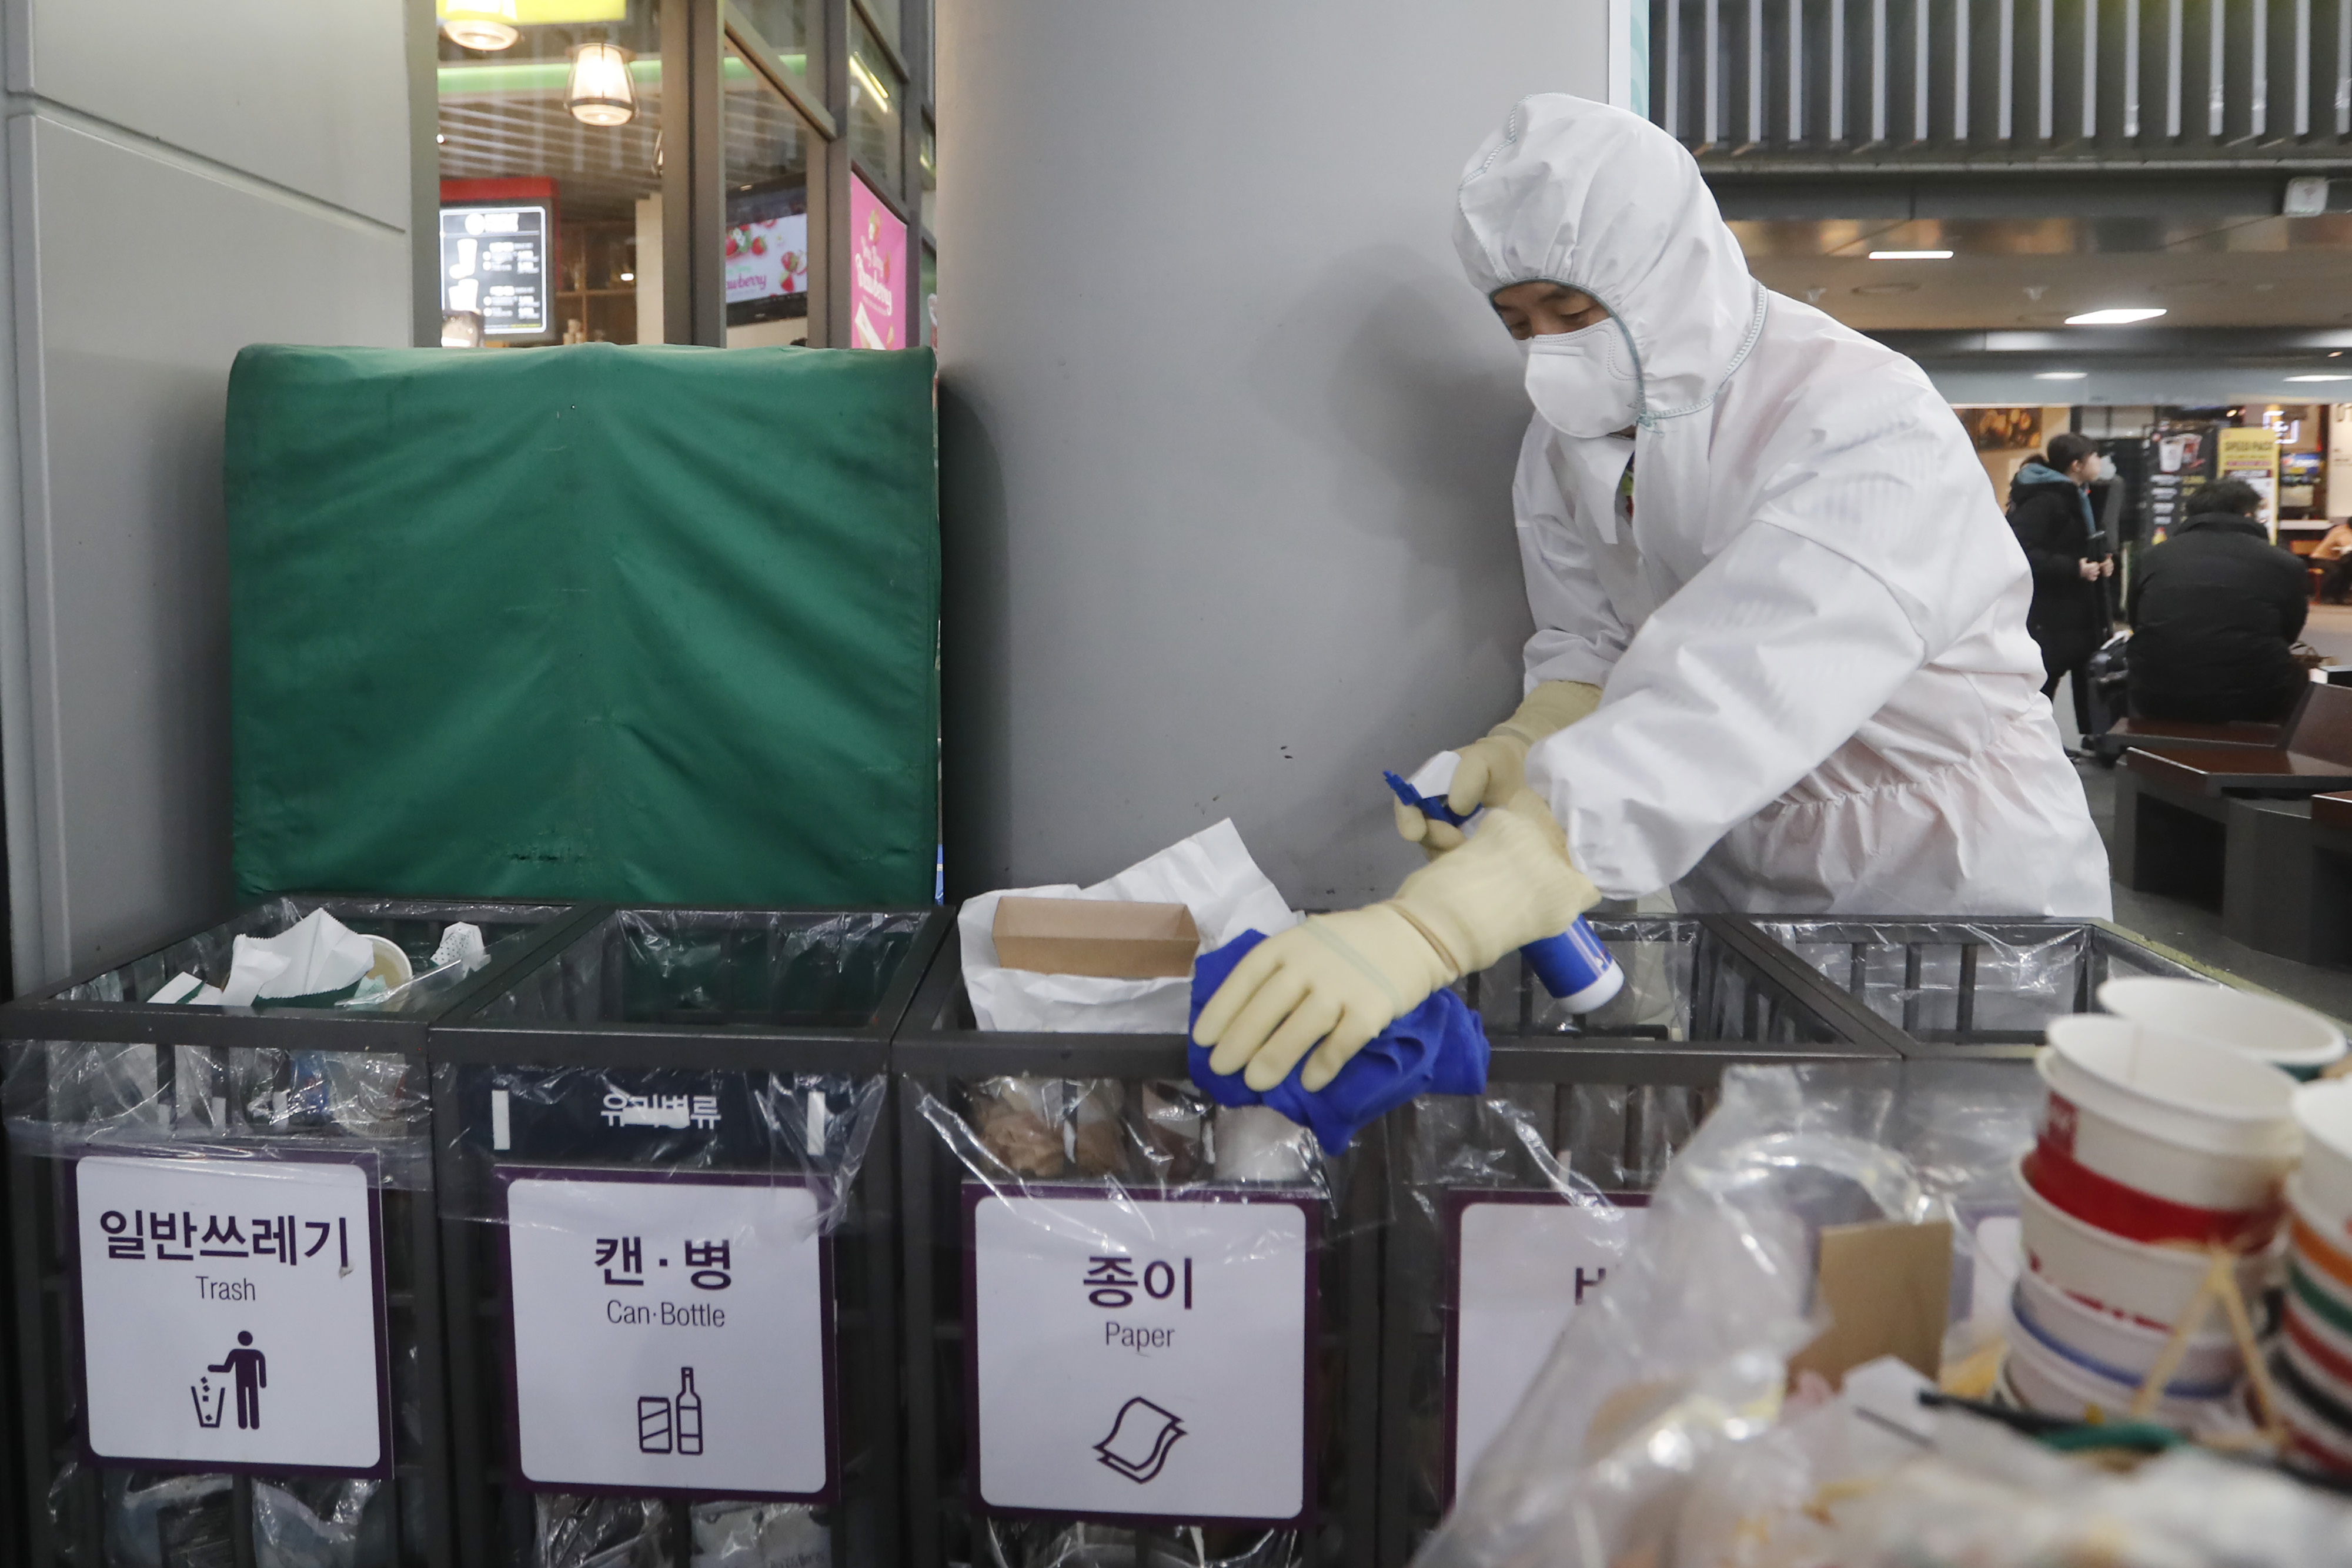 Senators encourage China's 'cooperation and transparency' after briefing on coronavirus outbreak